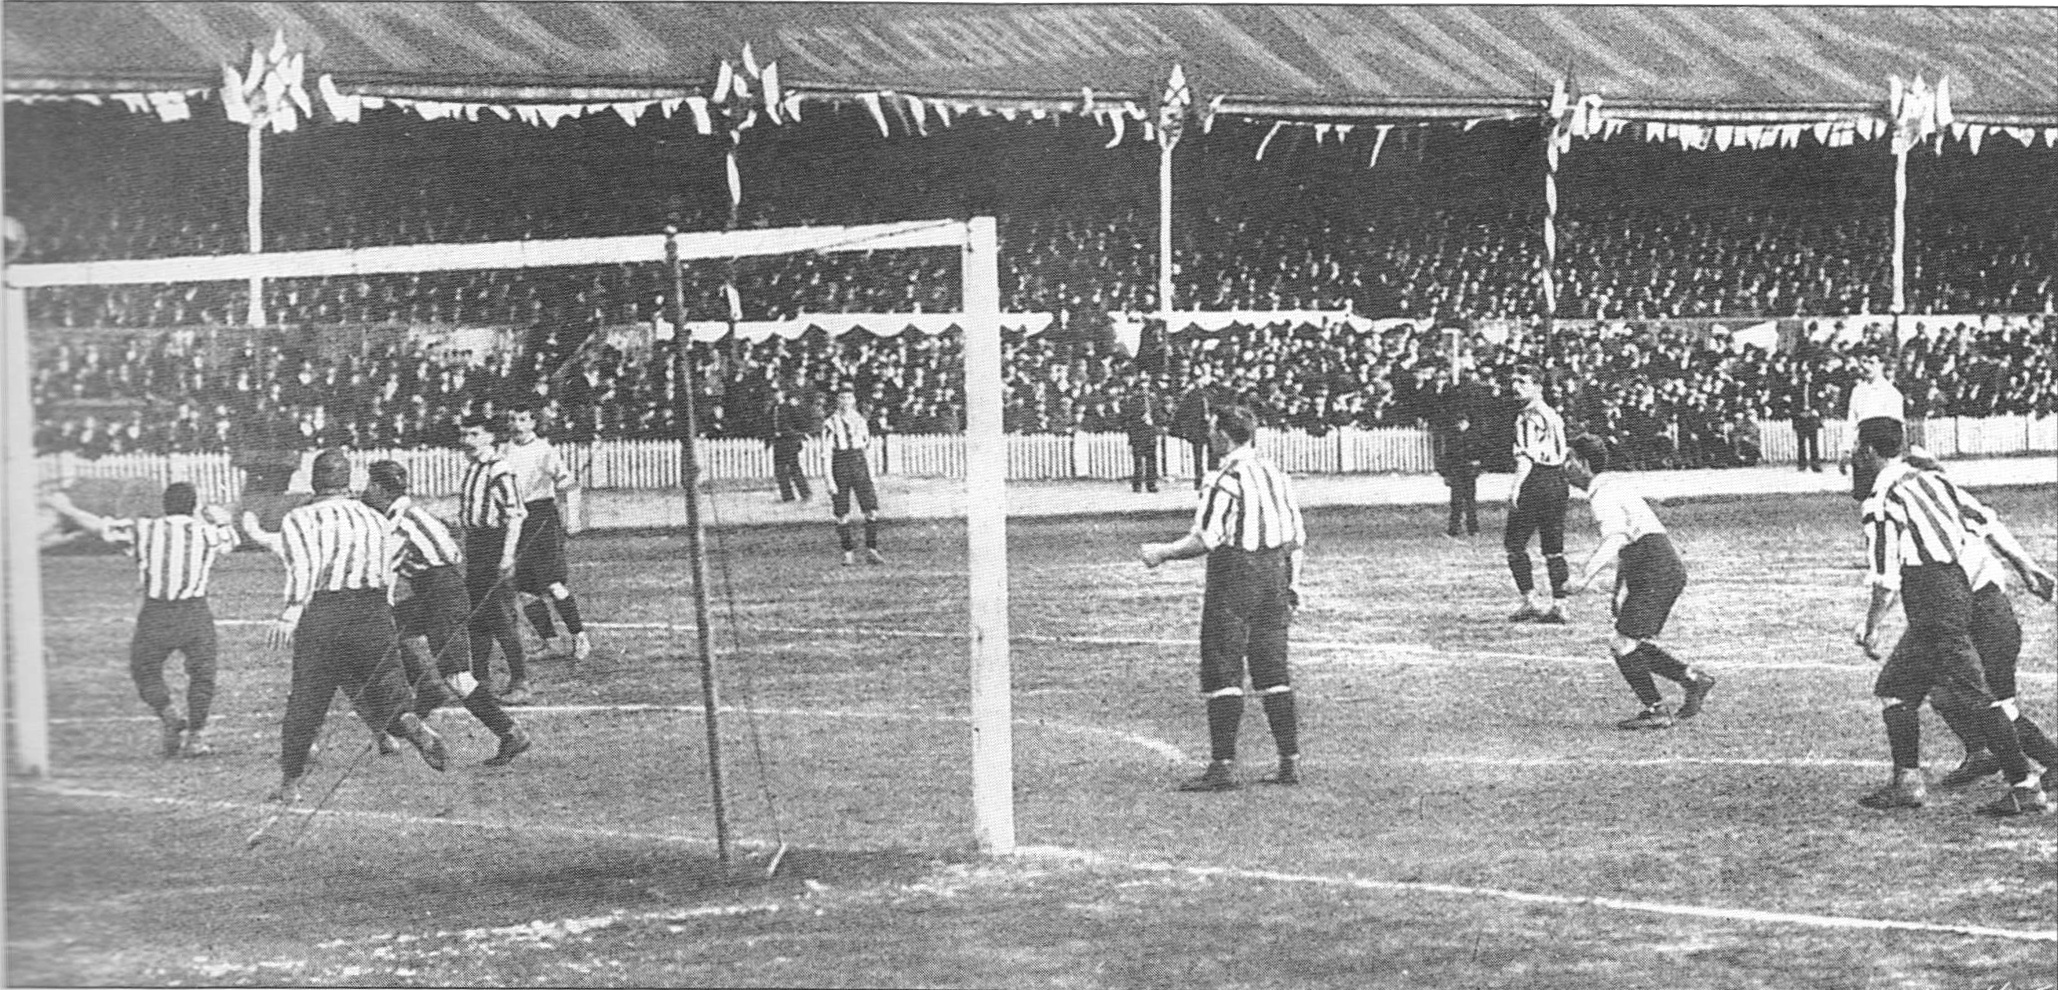 Sandy Brown (hidden) scoring the third goal for Tottenham Hotspur in the 1901 FA Cup Final replay against Sheffield United - Tottenham Hotspur F.C.